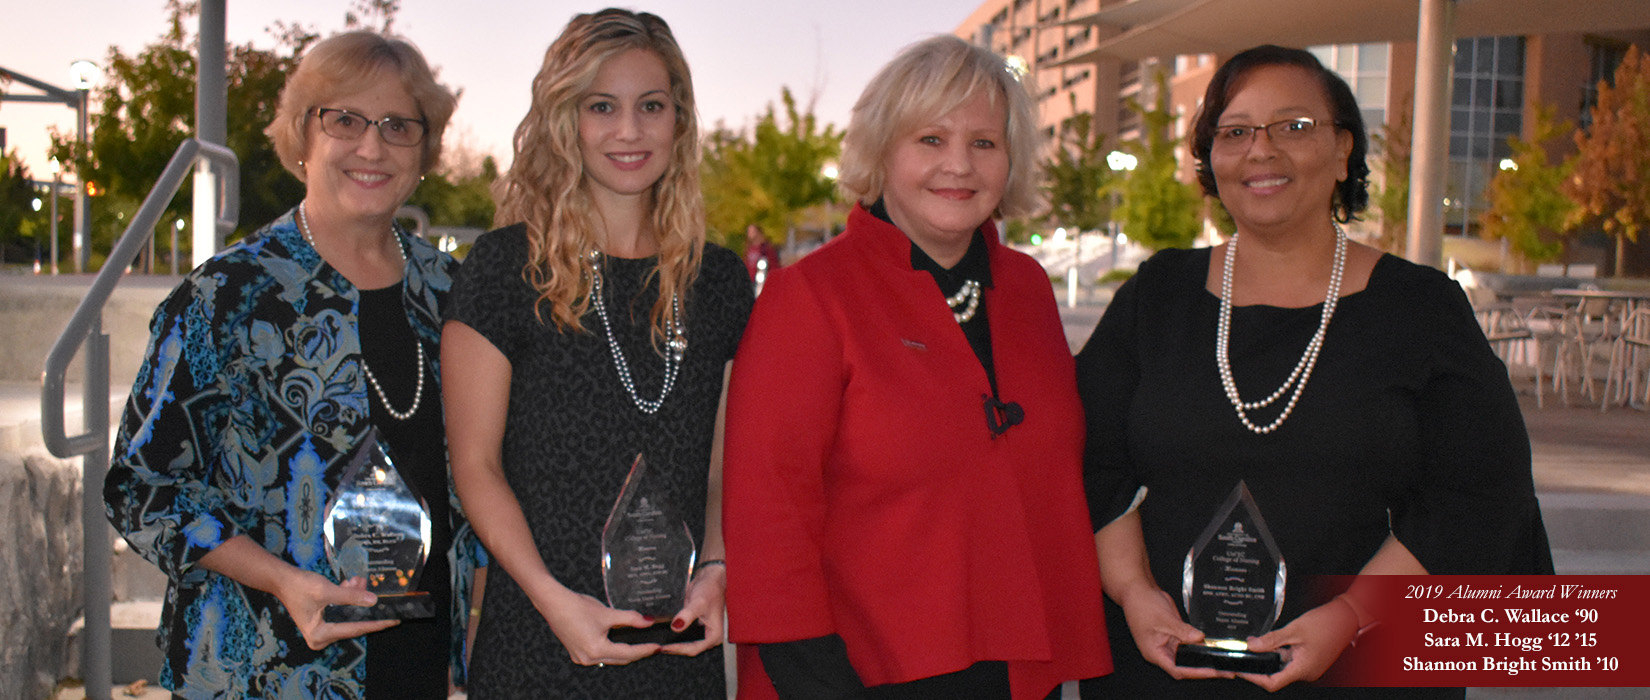 2019 Alumni Award Recipients Debra Wallace, Sara Hogg and Shannon Bright Smith with Dean Jeannette Andrews.